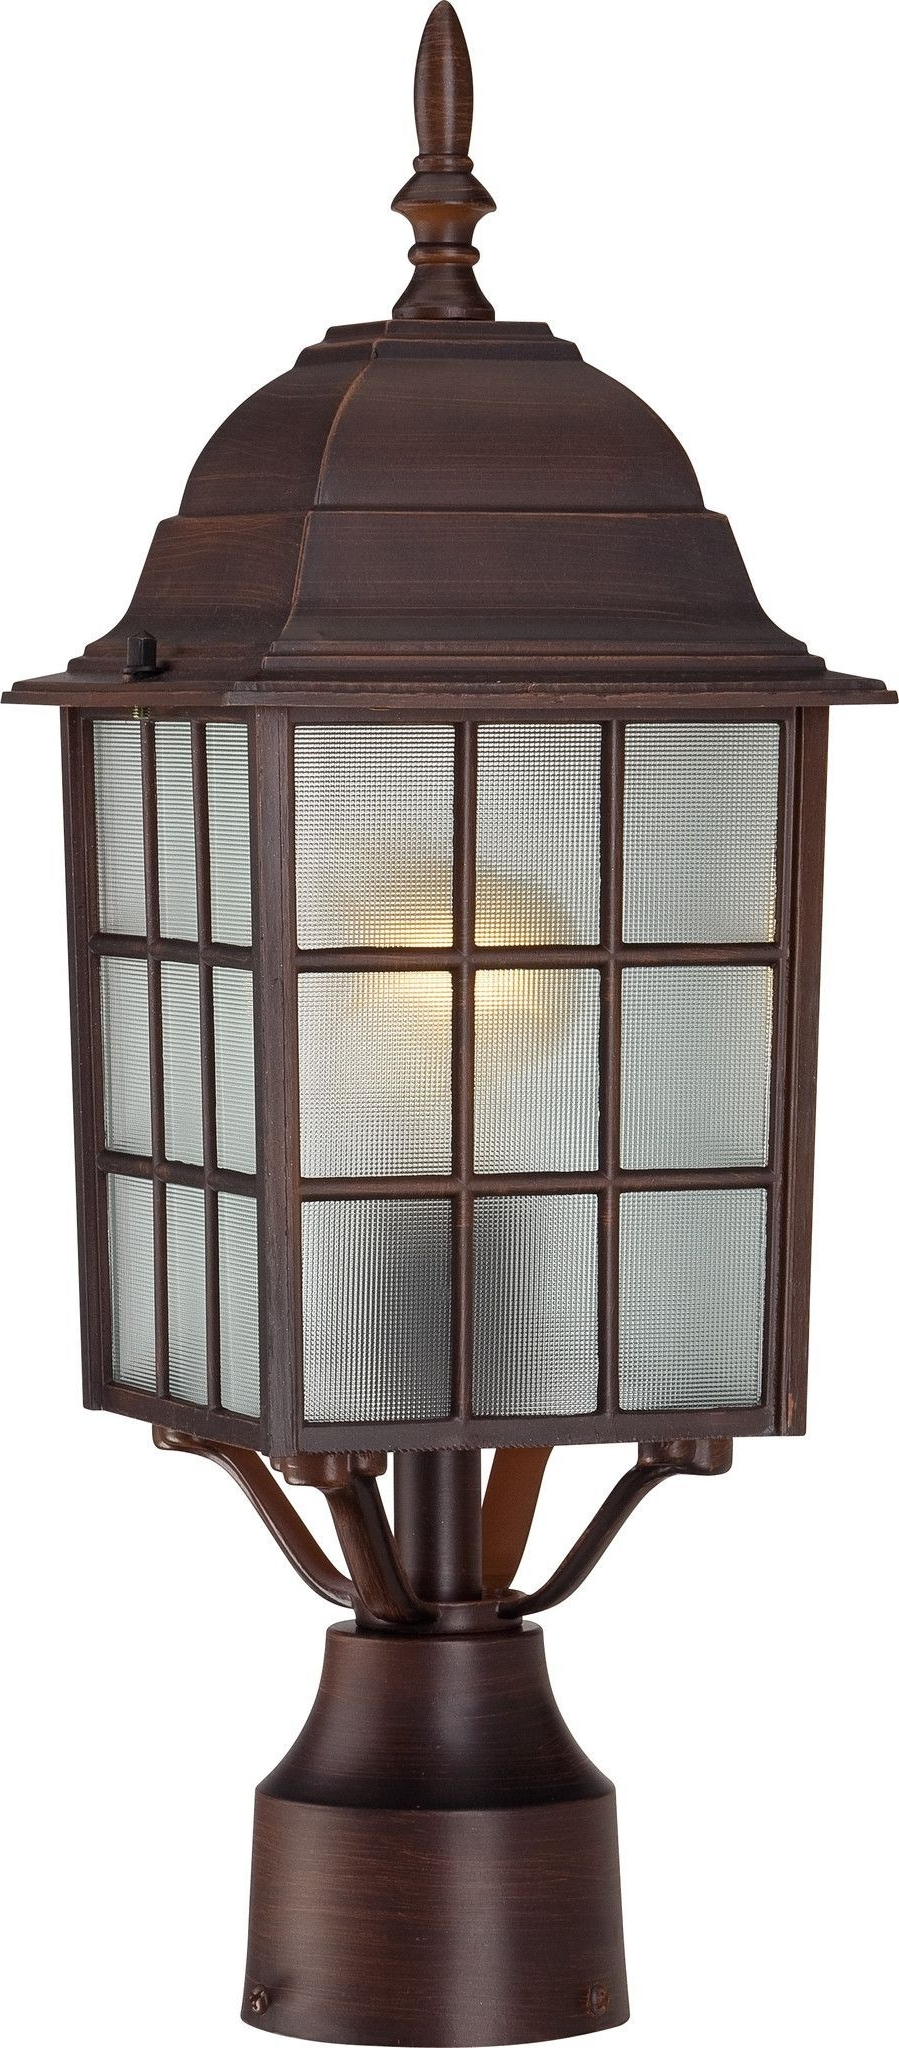 "2018 Outdoor Lamp Lanterns Throughout 17"" Outdoor Lamp Post Lights In Rustic Bronze Finish (Gallery 11 of 20)"